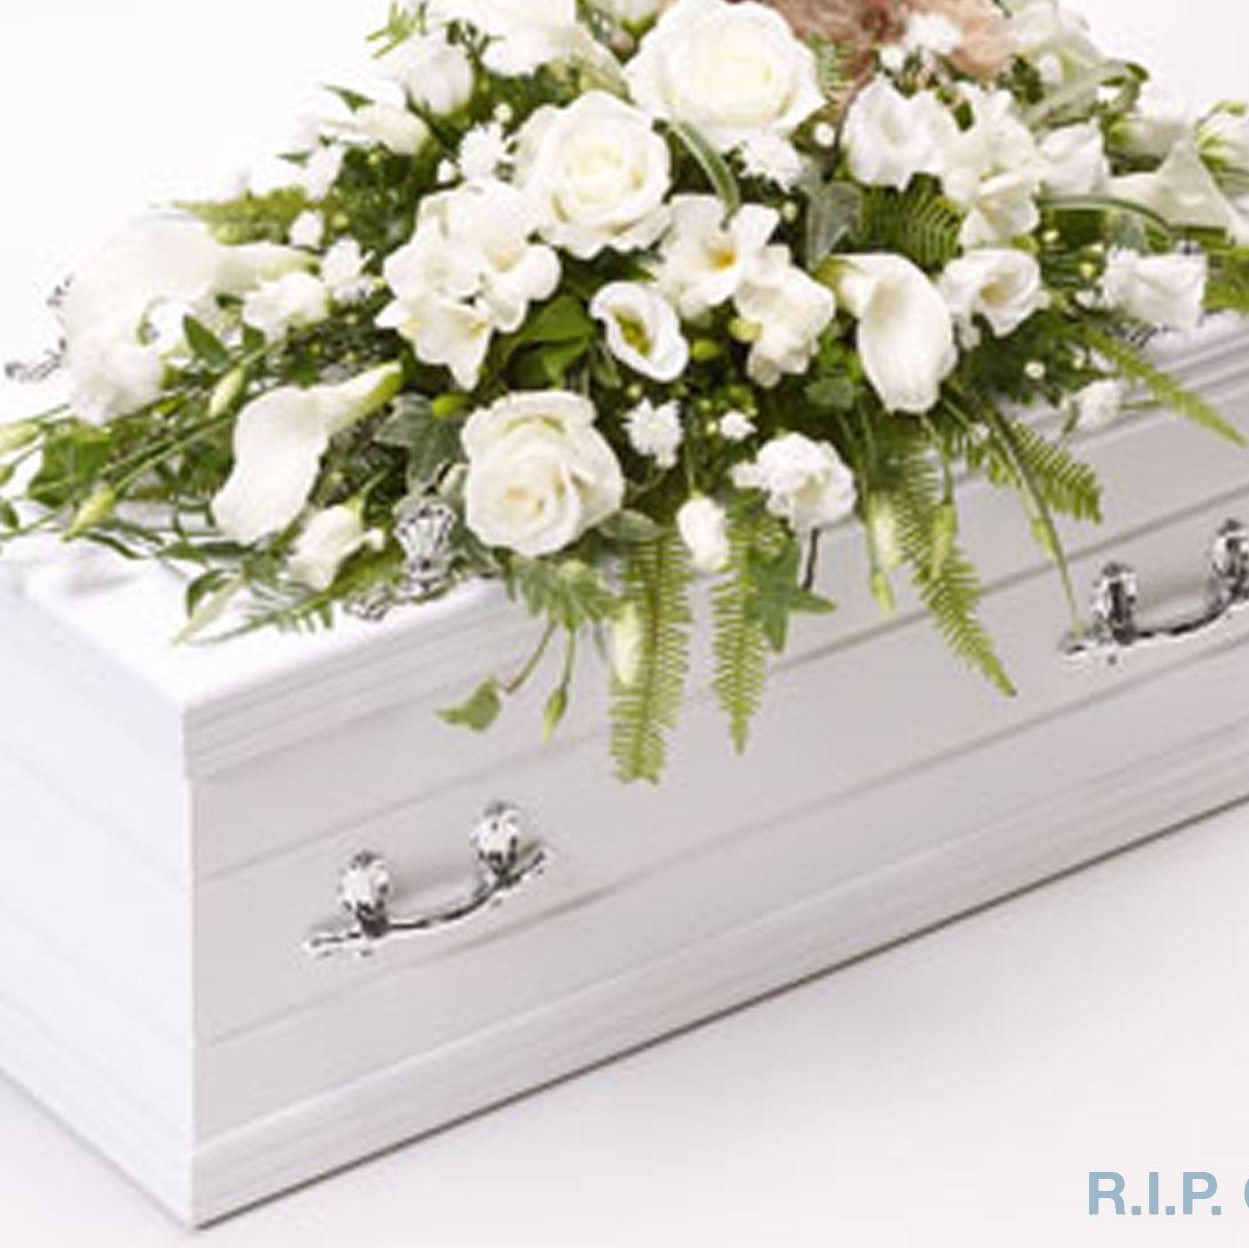 Donating Your Assistance With Funeral Arrangements Donate Forgood